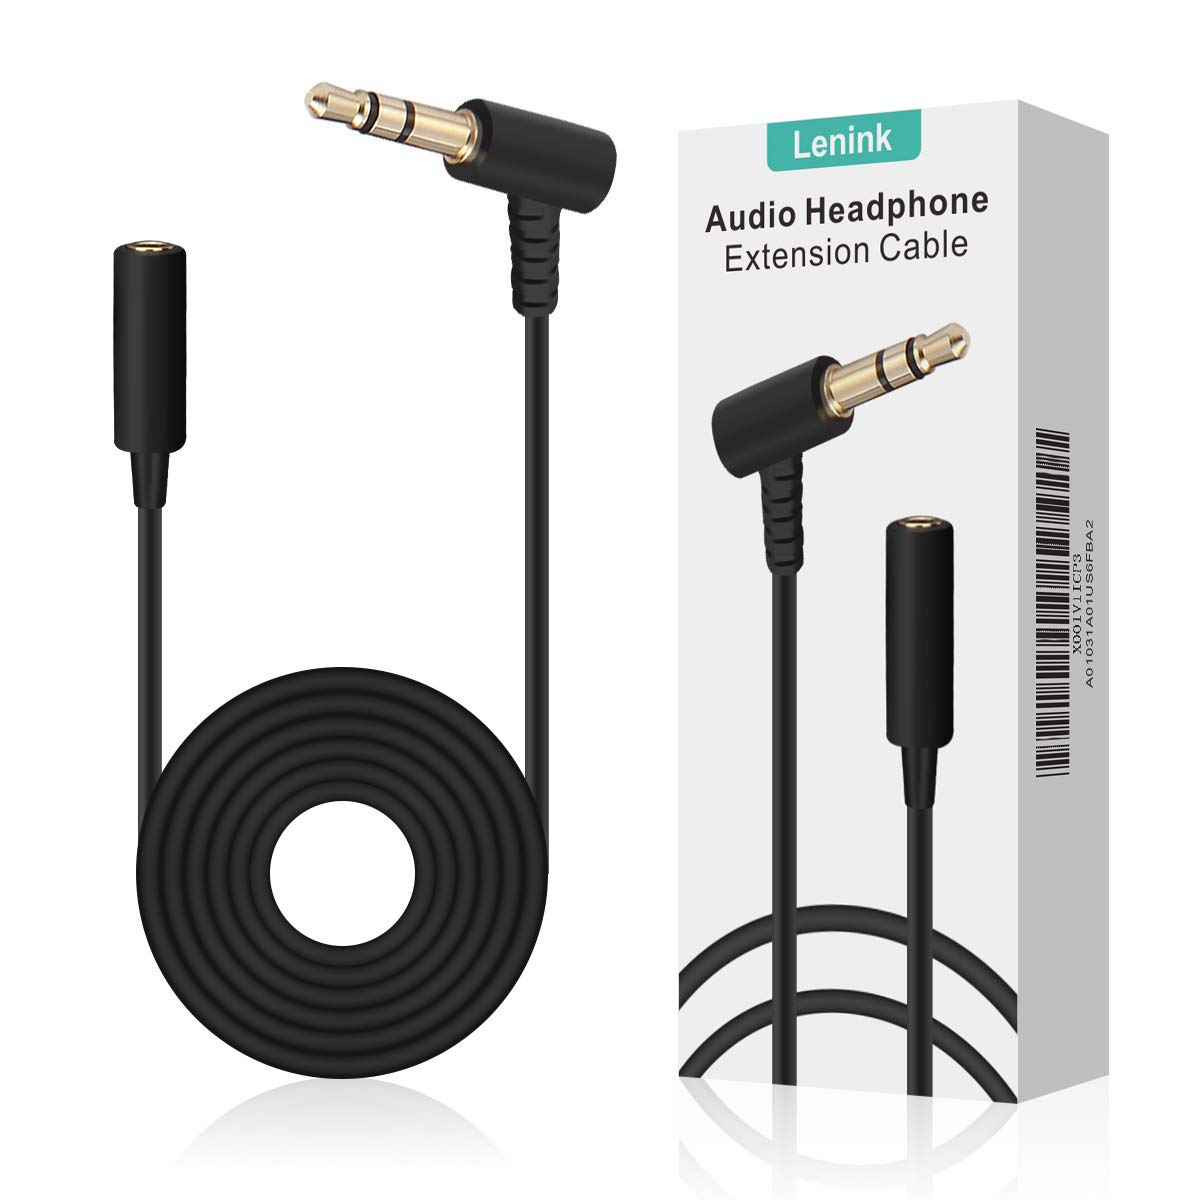 Lenink Replacement Cable,Audio Headphone Extension Cable Cord Compatible with Bose On-Ear OE Headphones,Black